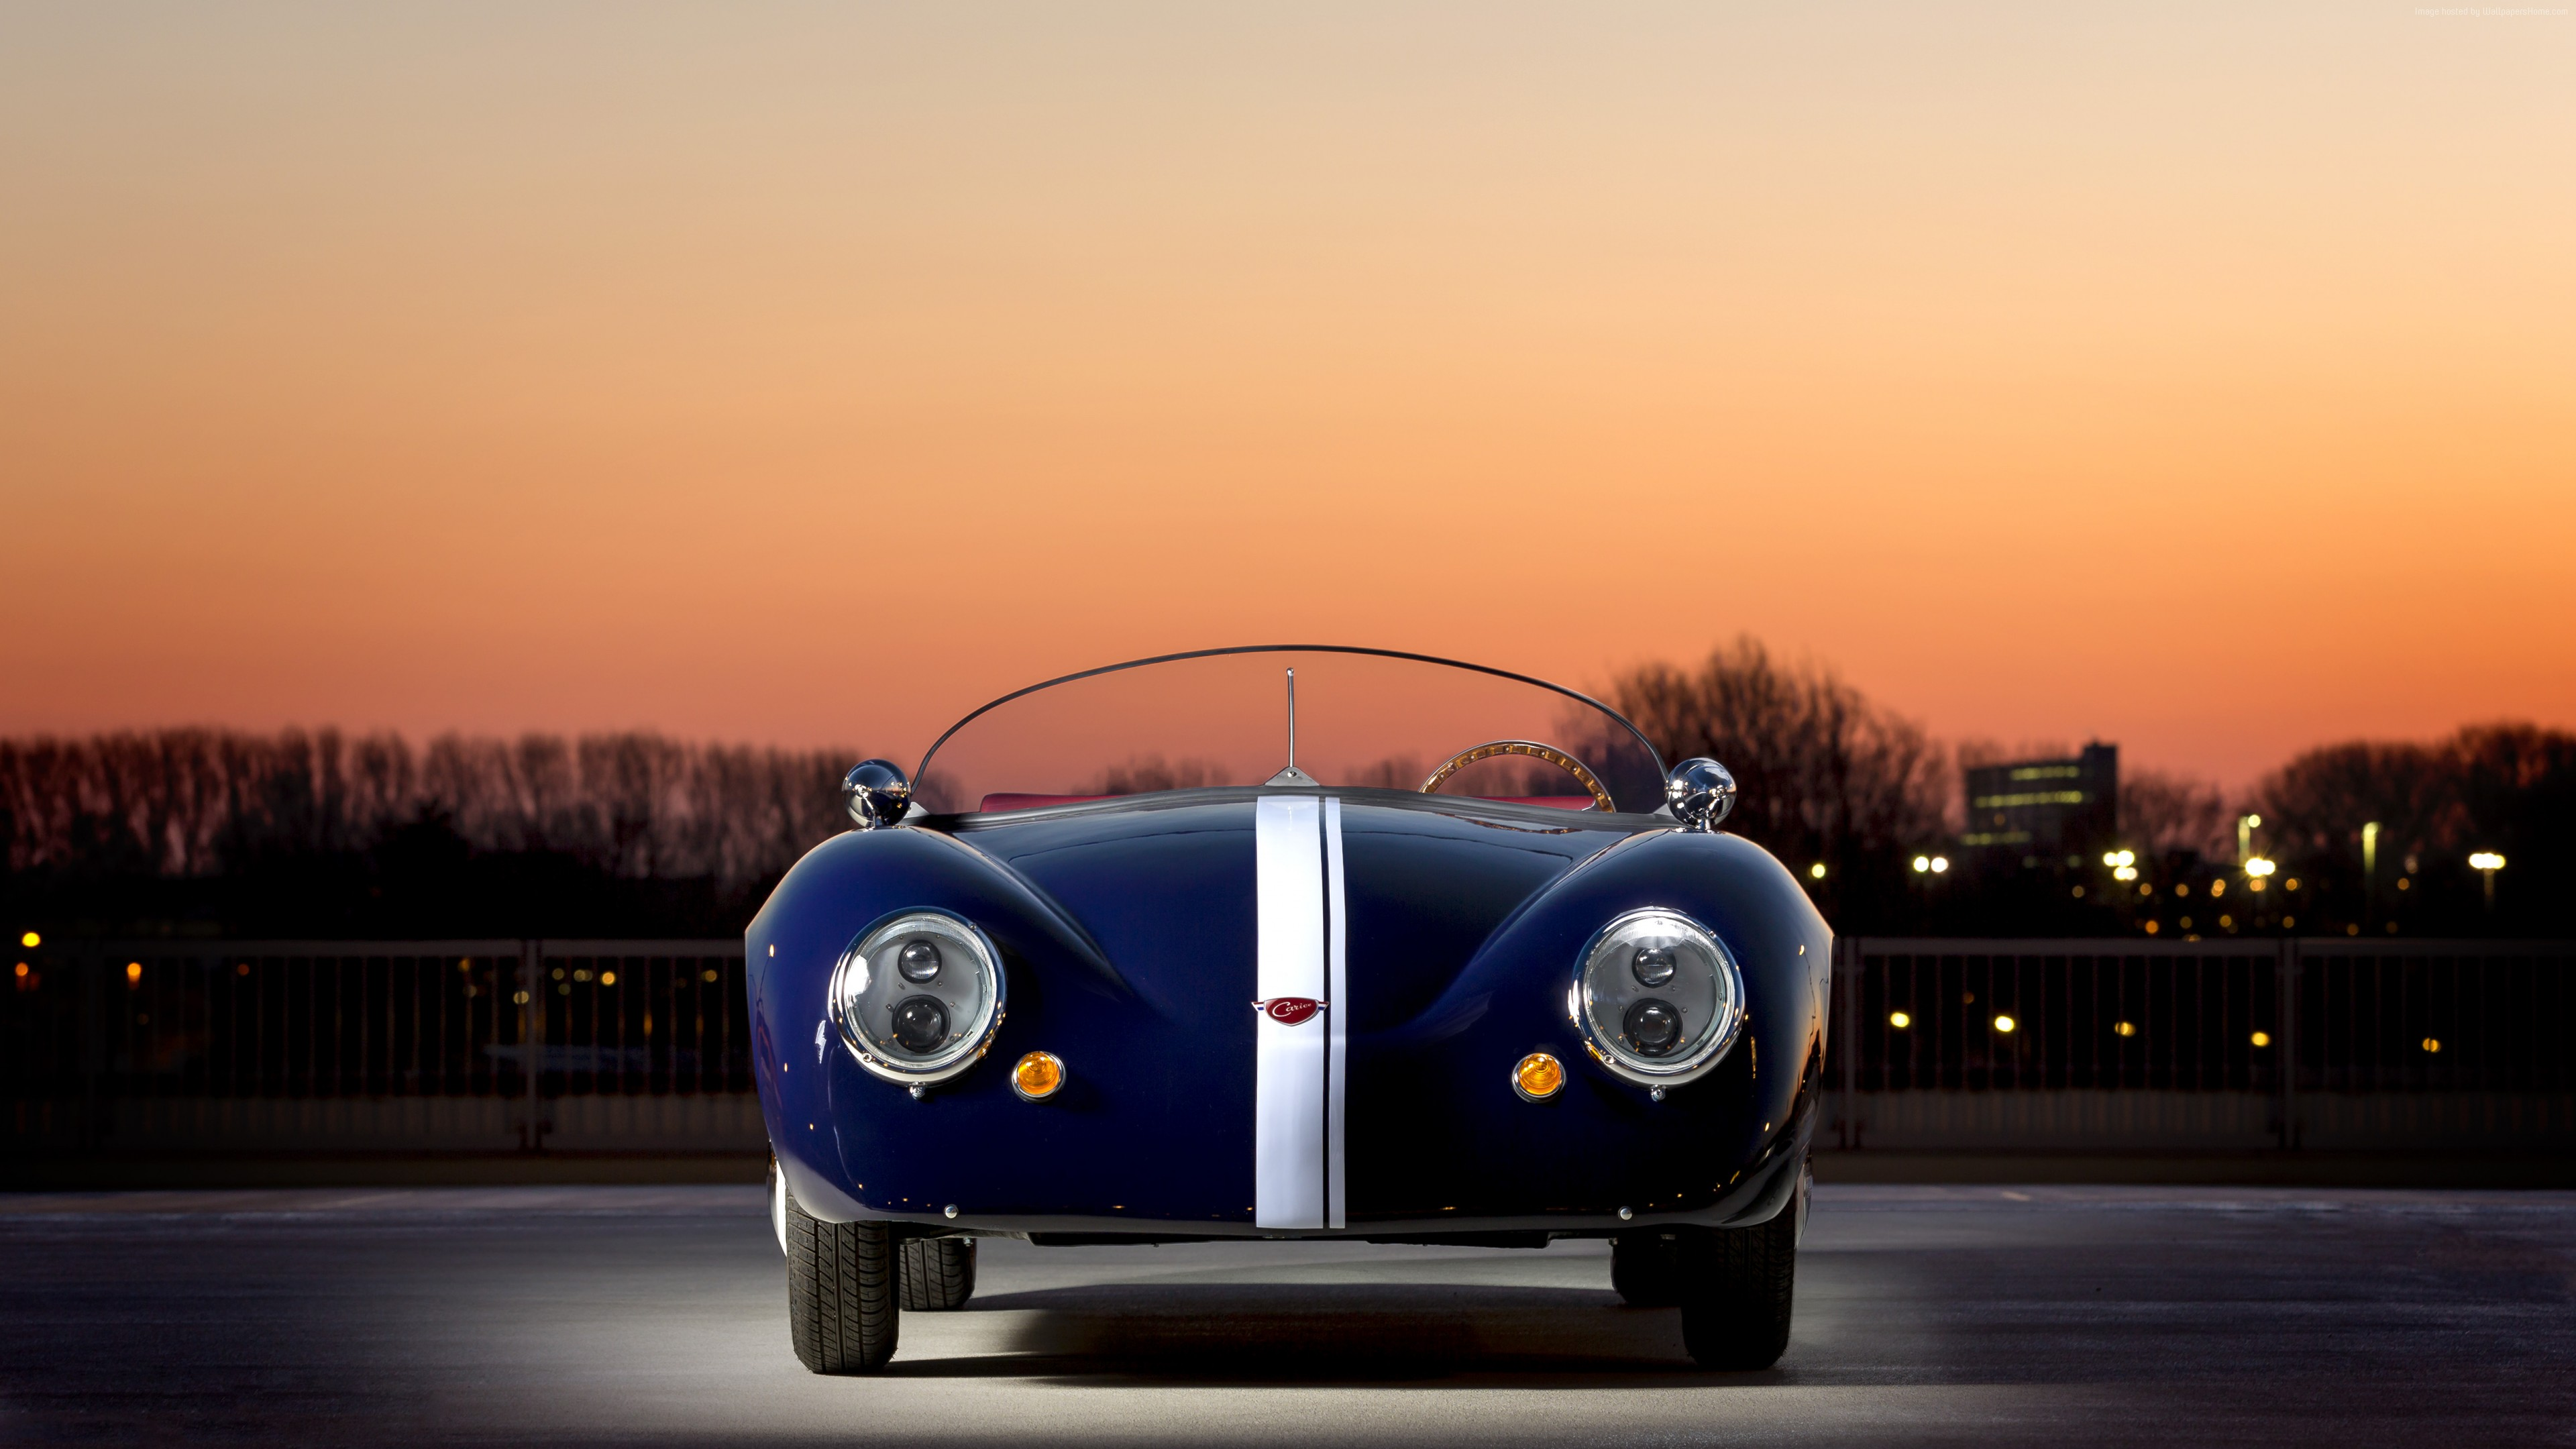 carice mk1 1539104494 - Carice MK1 - vintage wallpapers, cars wallpapers